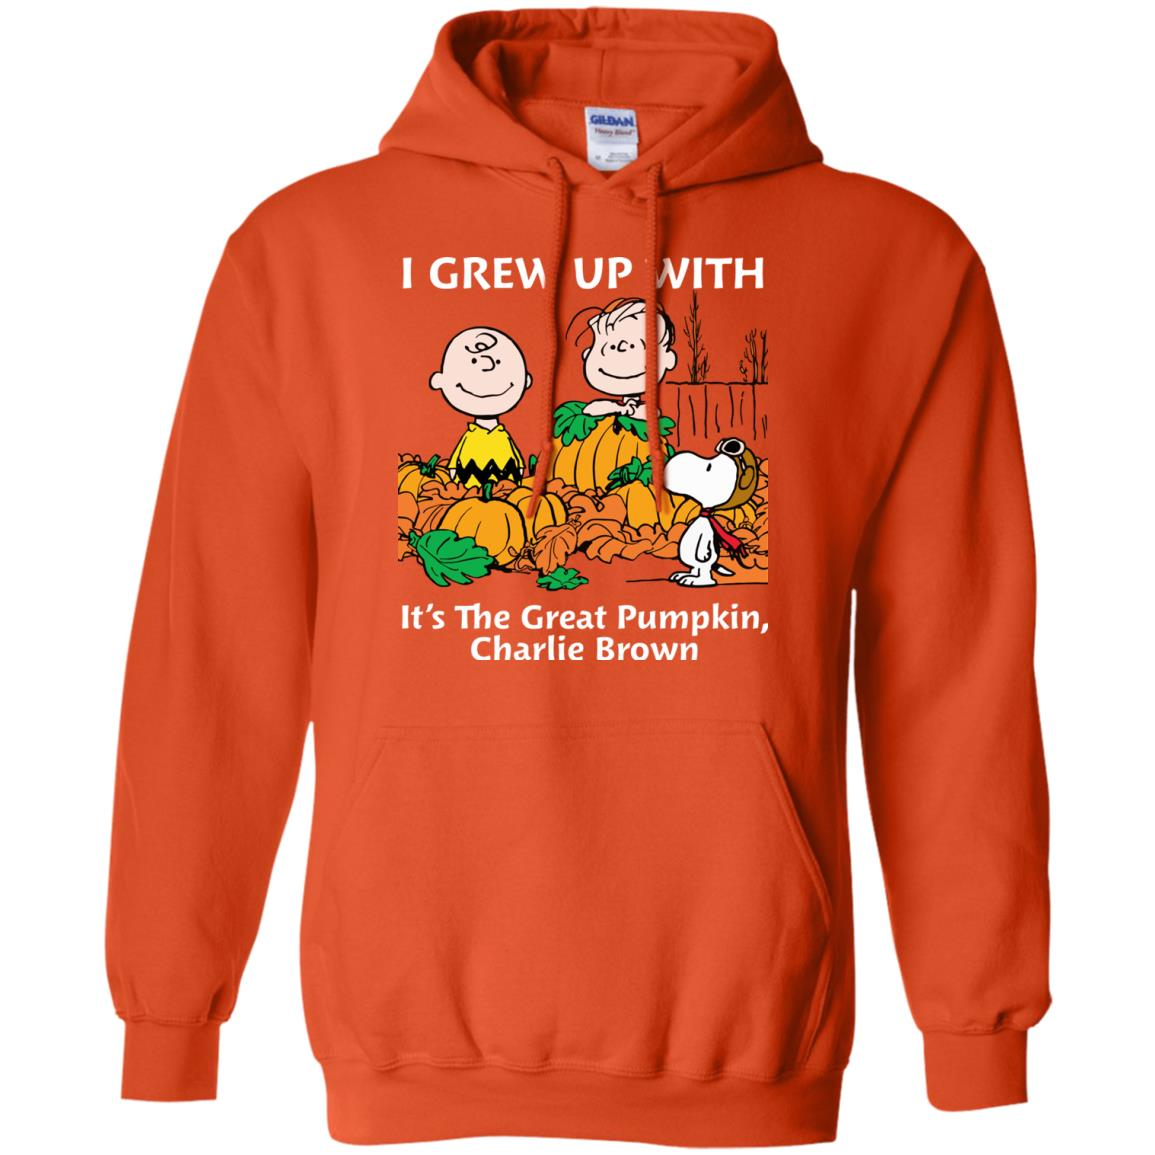 image 271 - Charlie Brown: I grew up with It's The Great Pumpkin shirt, sweater